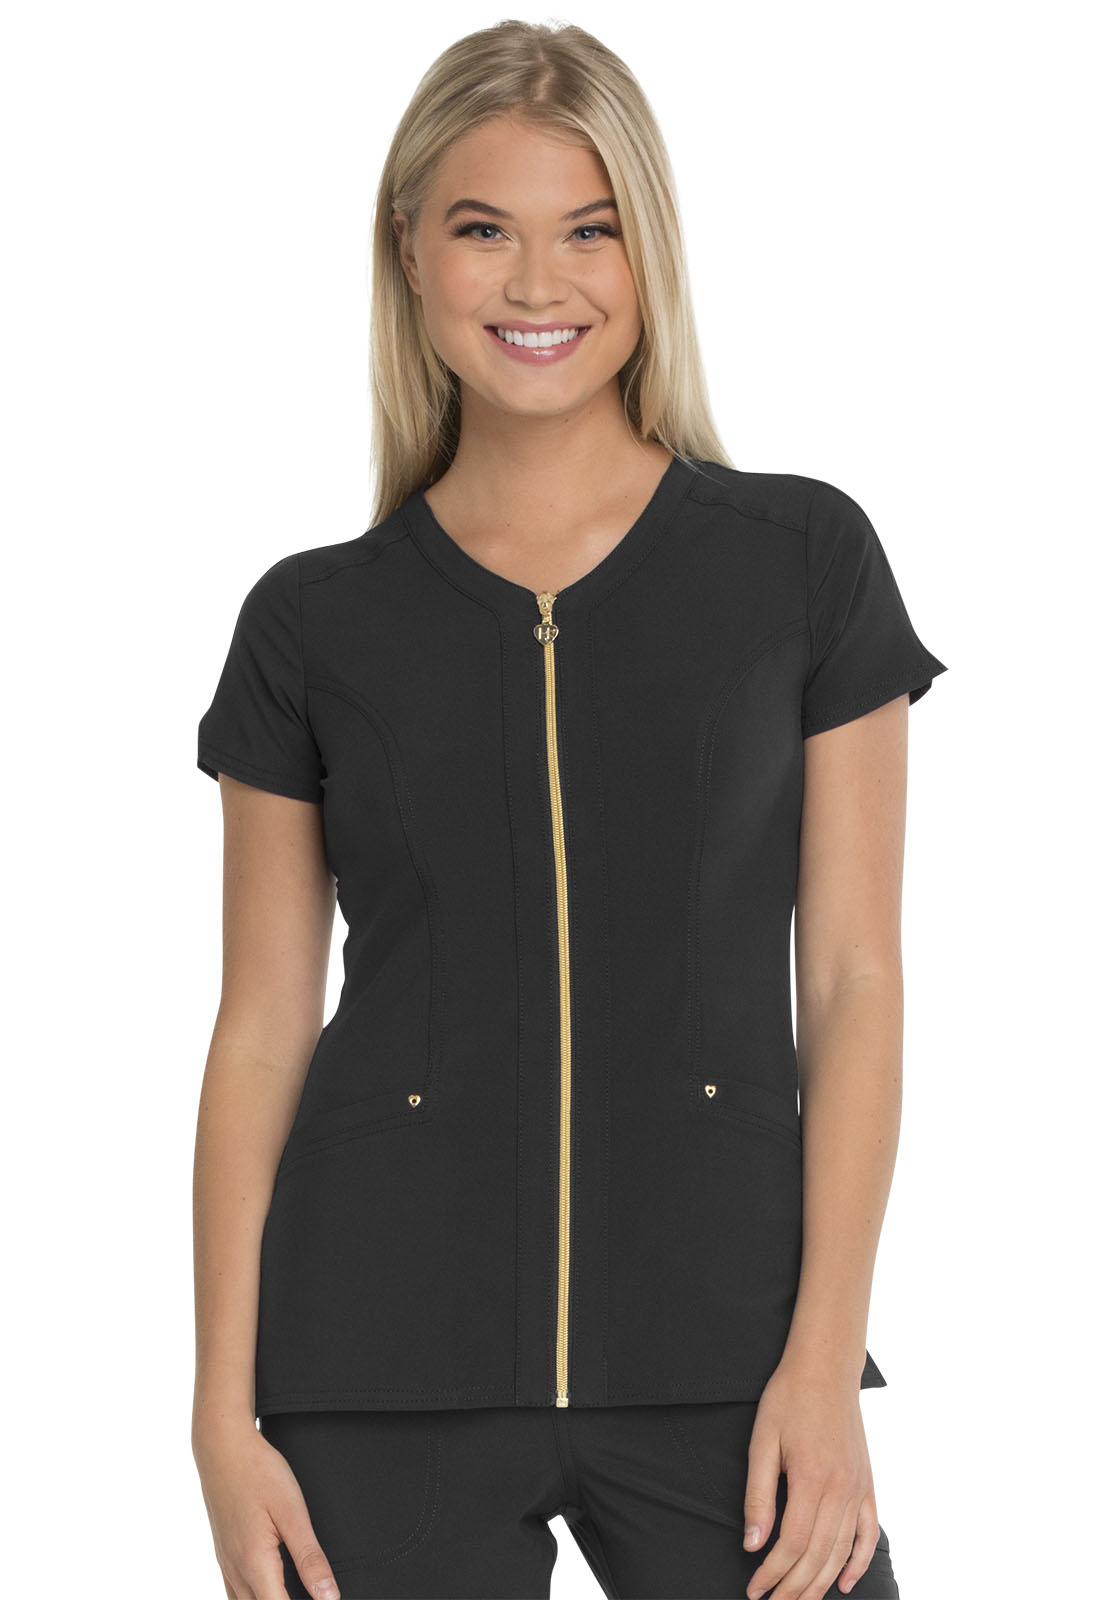 f1a787f8388 Love Always Zip Front V-Neck Top in Black HS655-BAPS from Cherokee ...